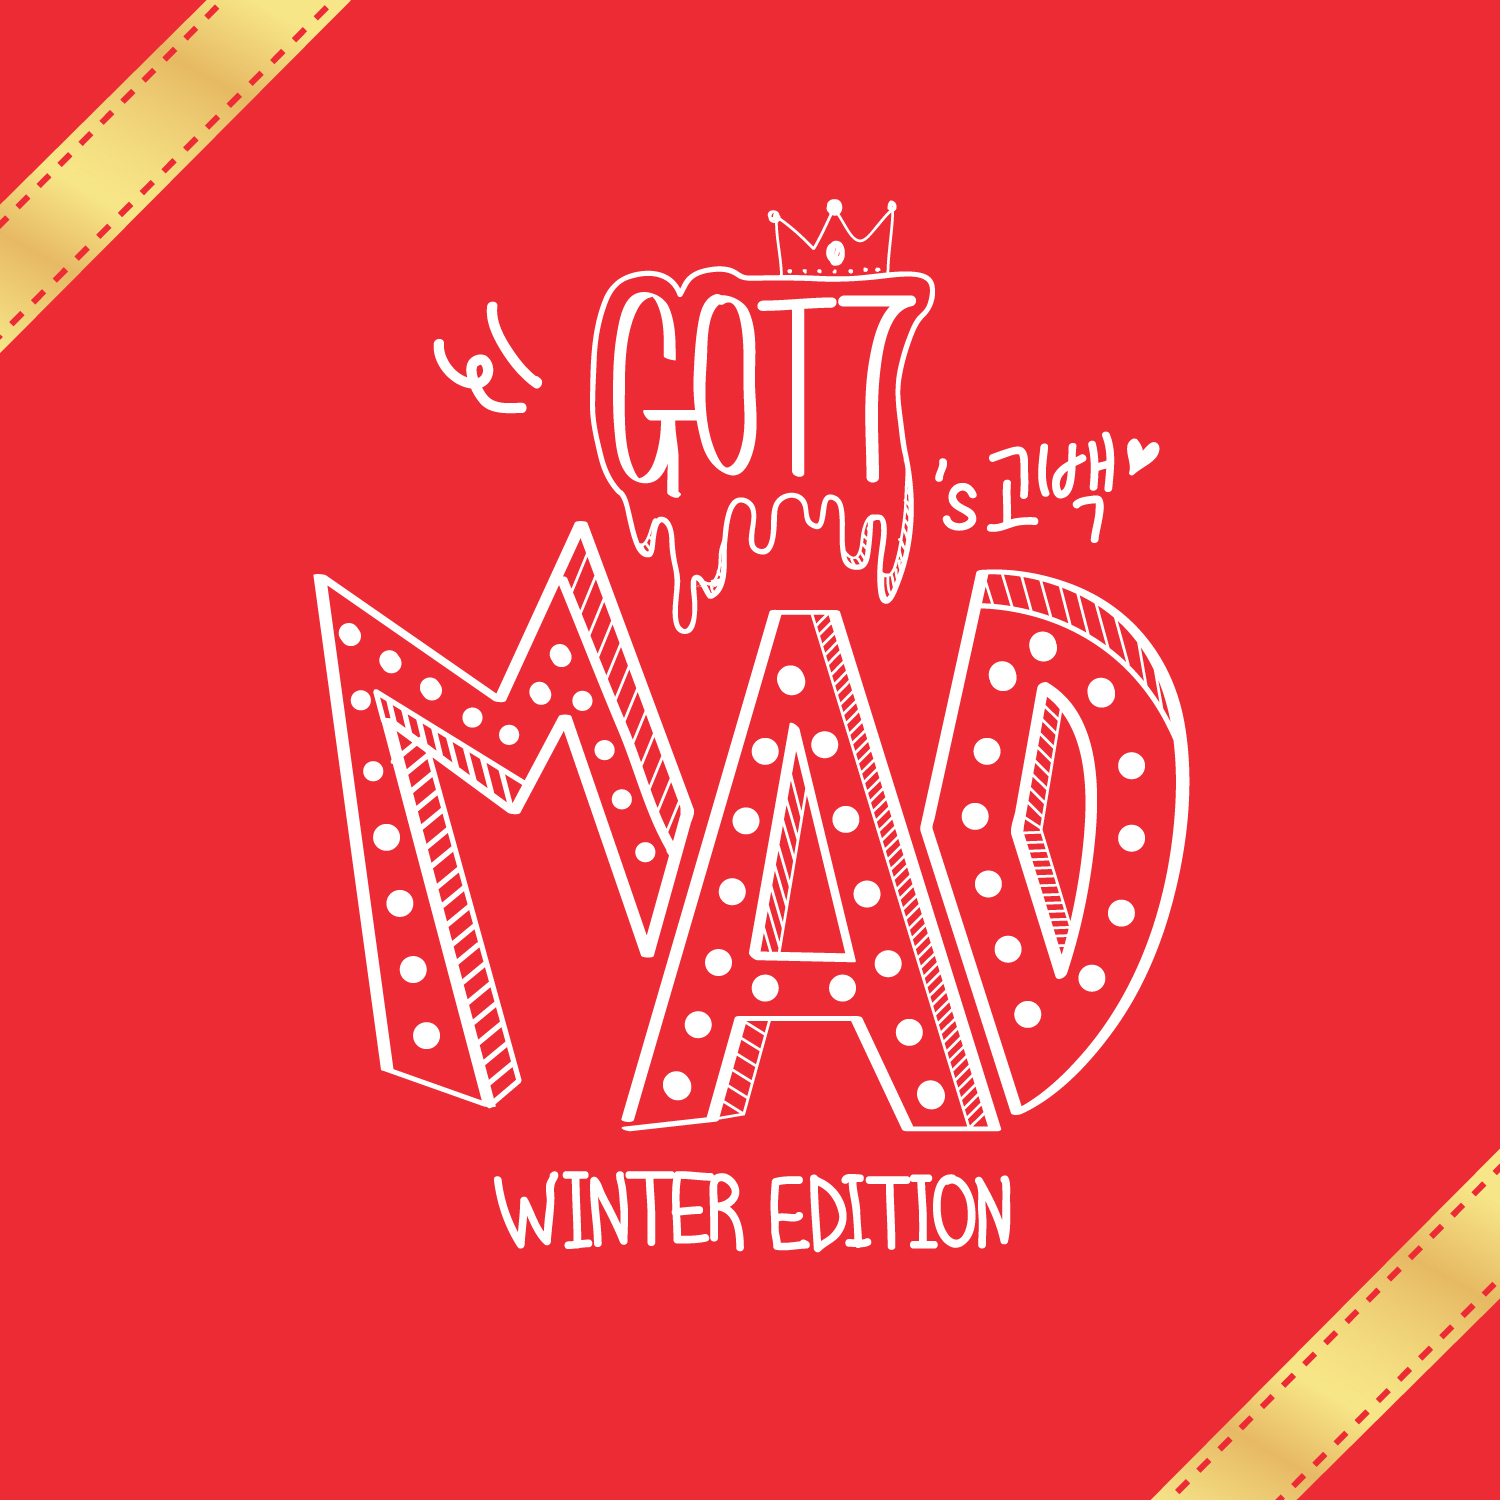 GOT7 - Mad Winter Edition (Full Album) - Confession Song K2Ost free mp3 download korean song kpop kdrama ost lyric 320 kbps